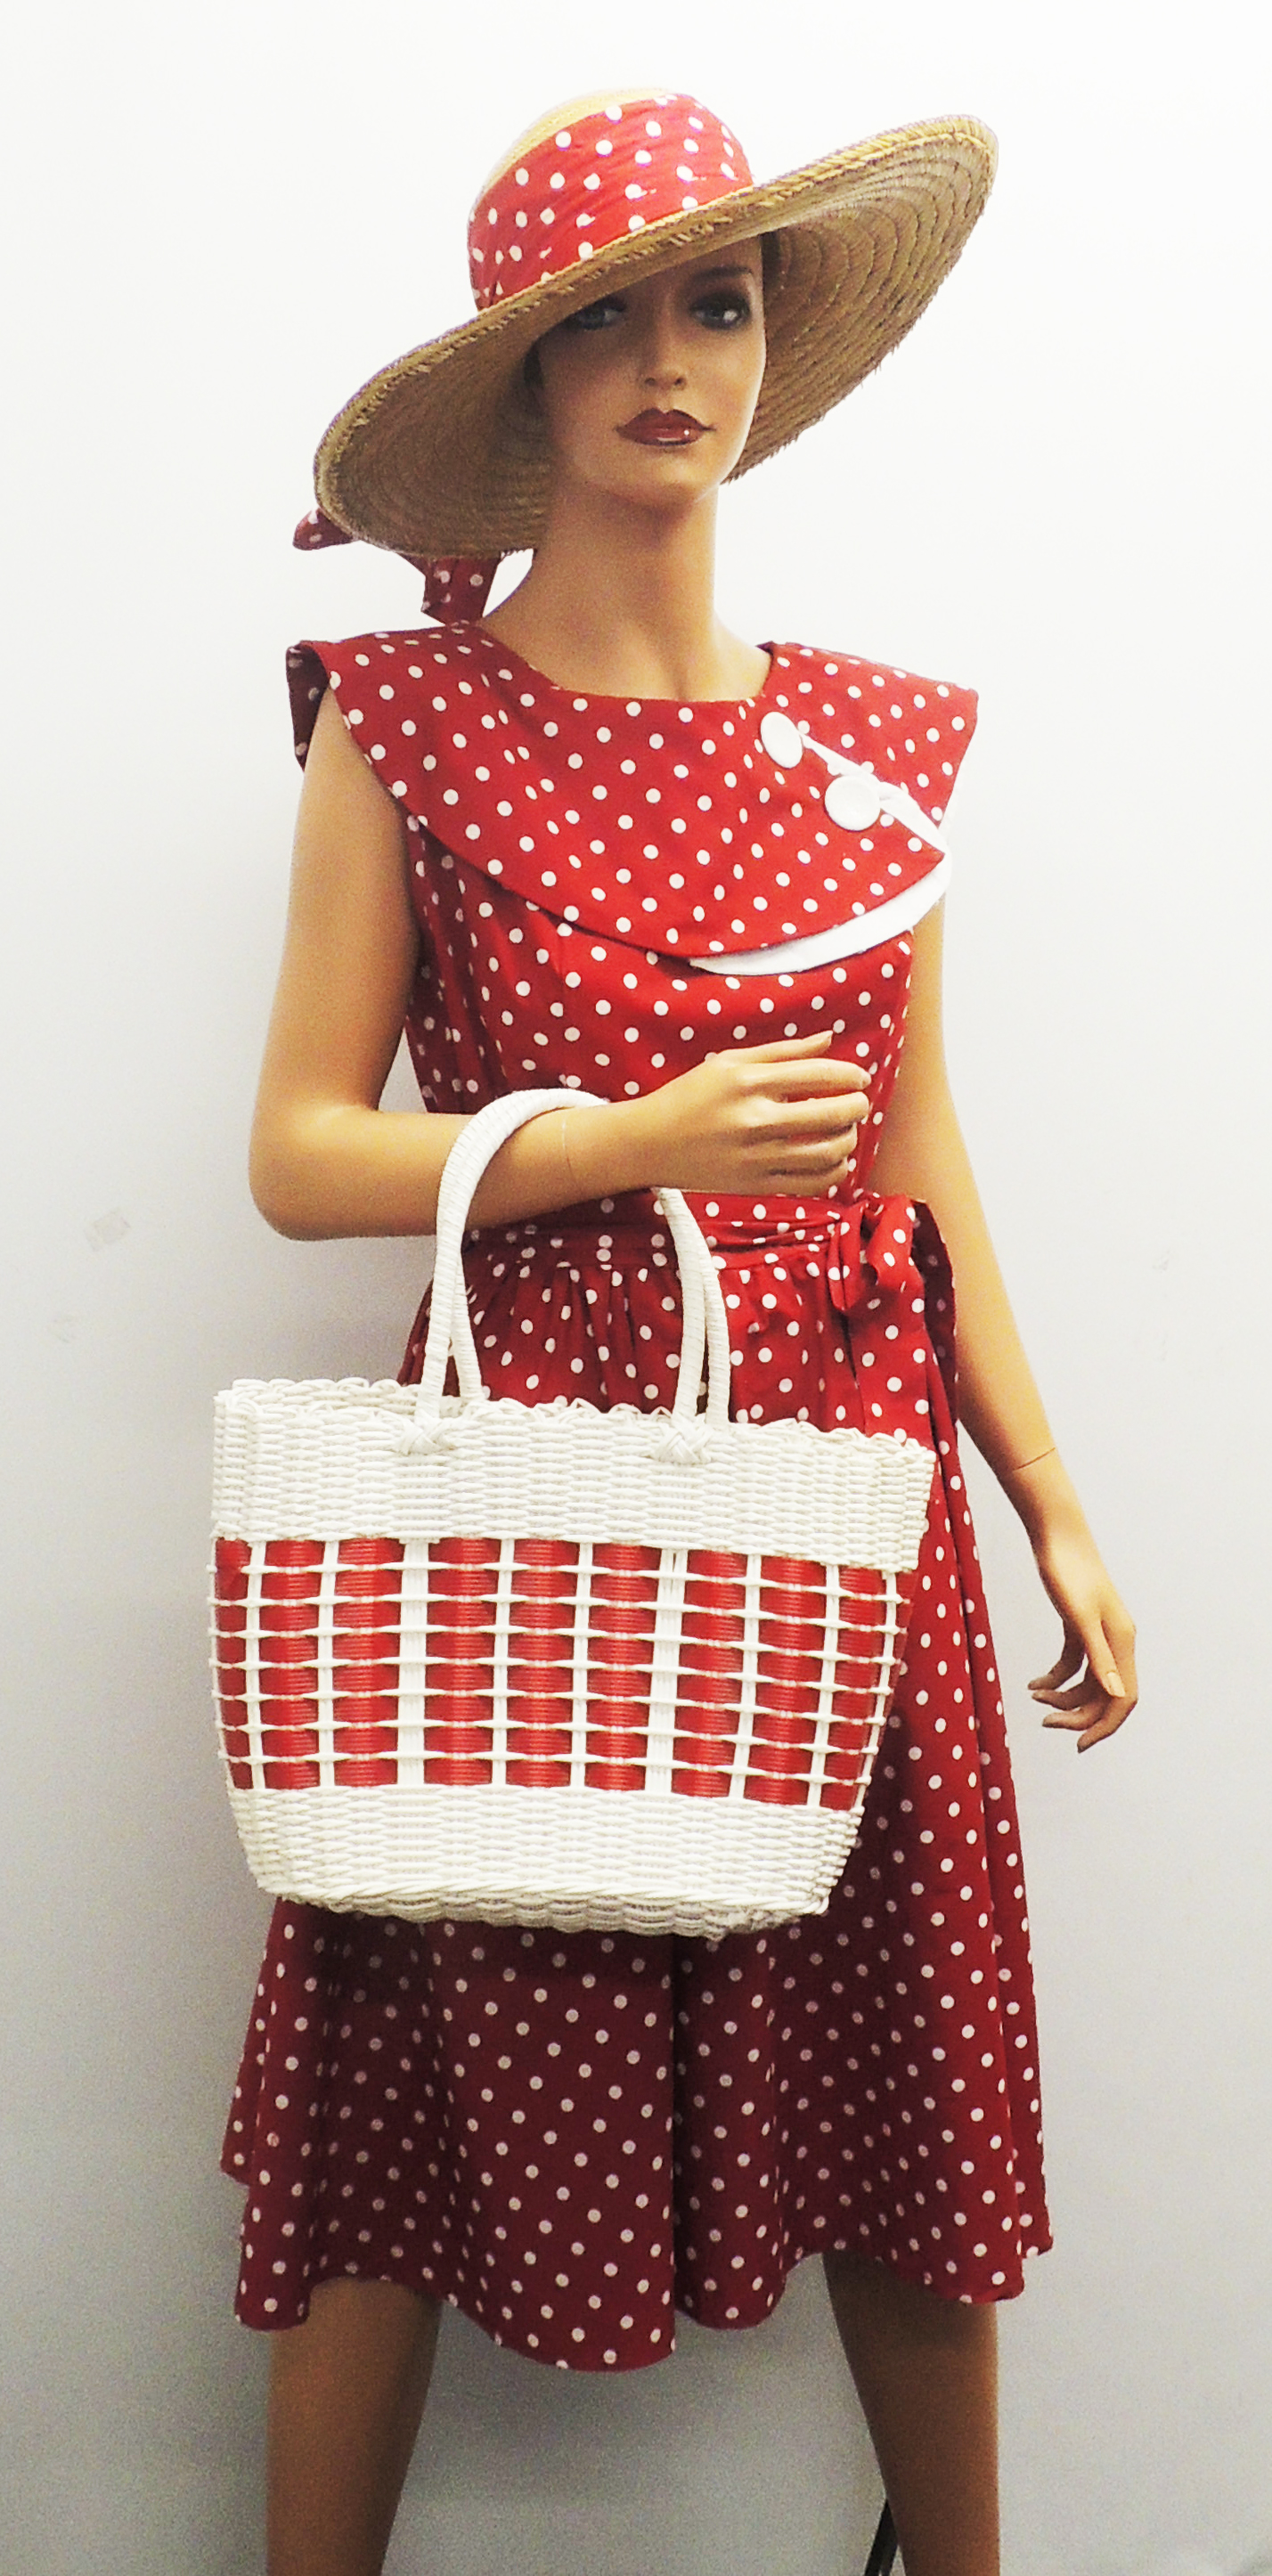 1940s Handbags and Purses History    New Retro 1940s 50's style White Red Blue Plastic Beach Picnic Shopping Basket $12.99 AT vintagedancer.com